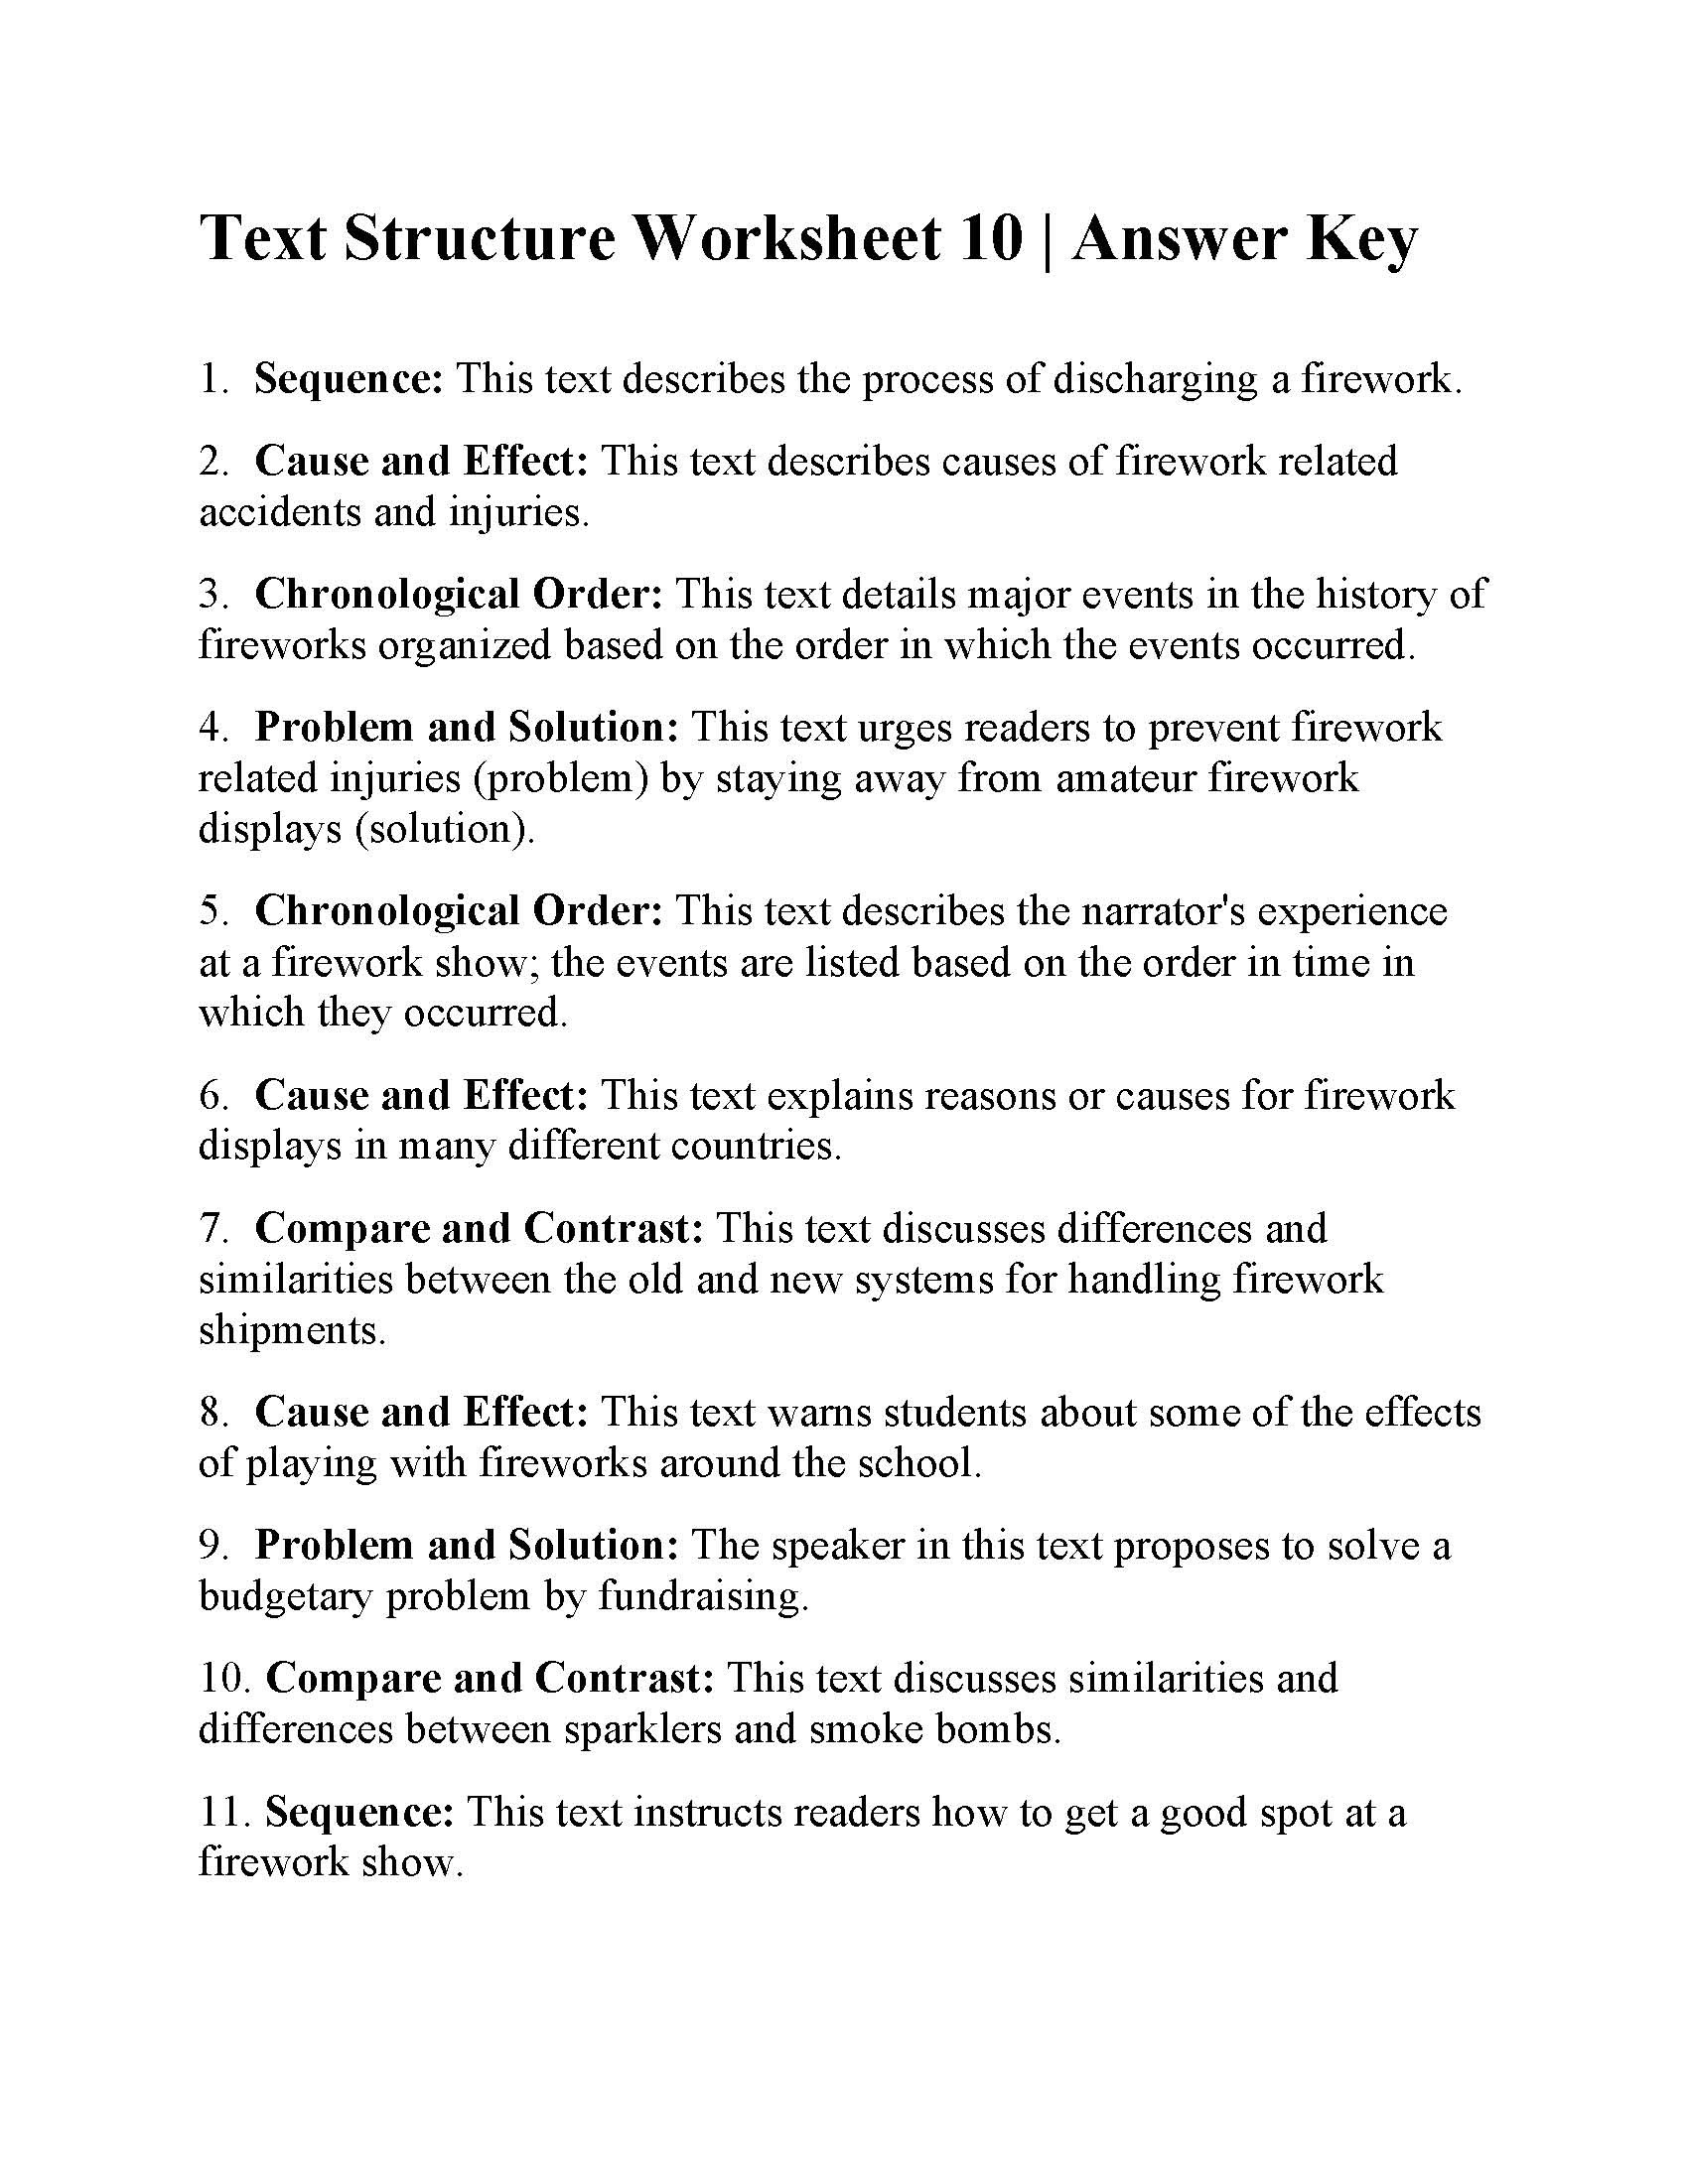 Text Structure 5th Grade Worksheets Telling Time Word Problems Worksheets Main Idea Multiple